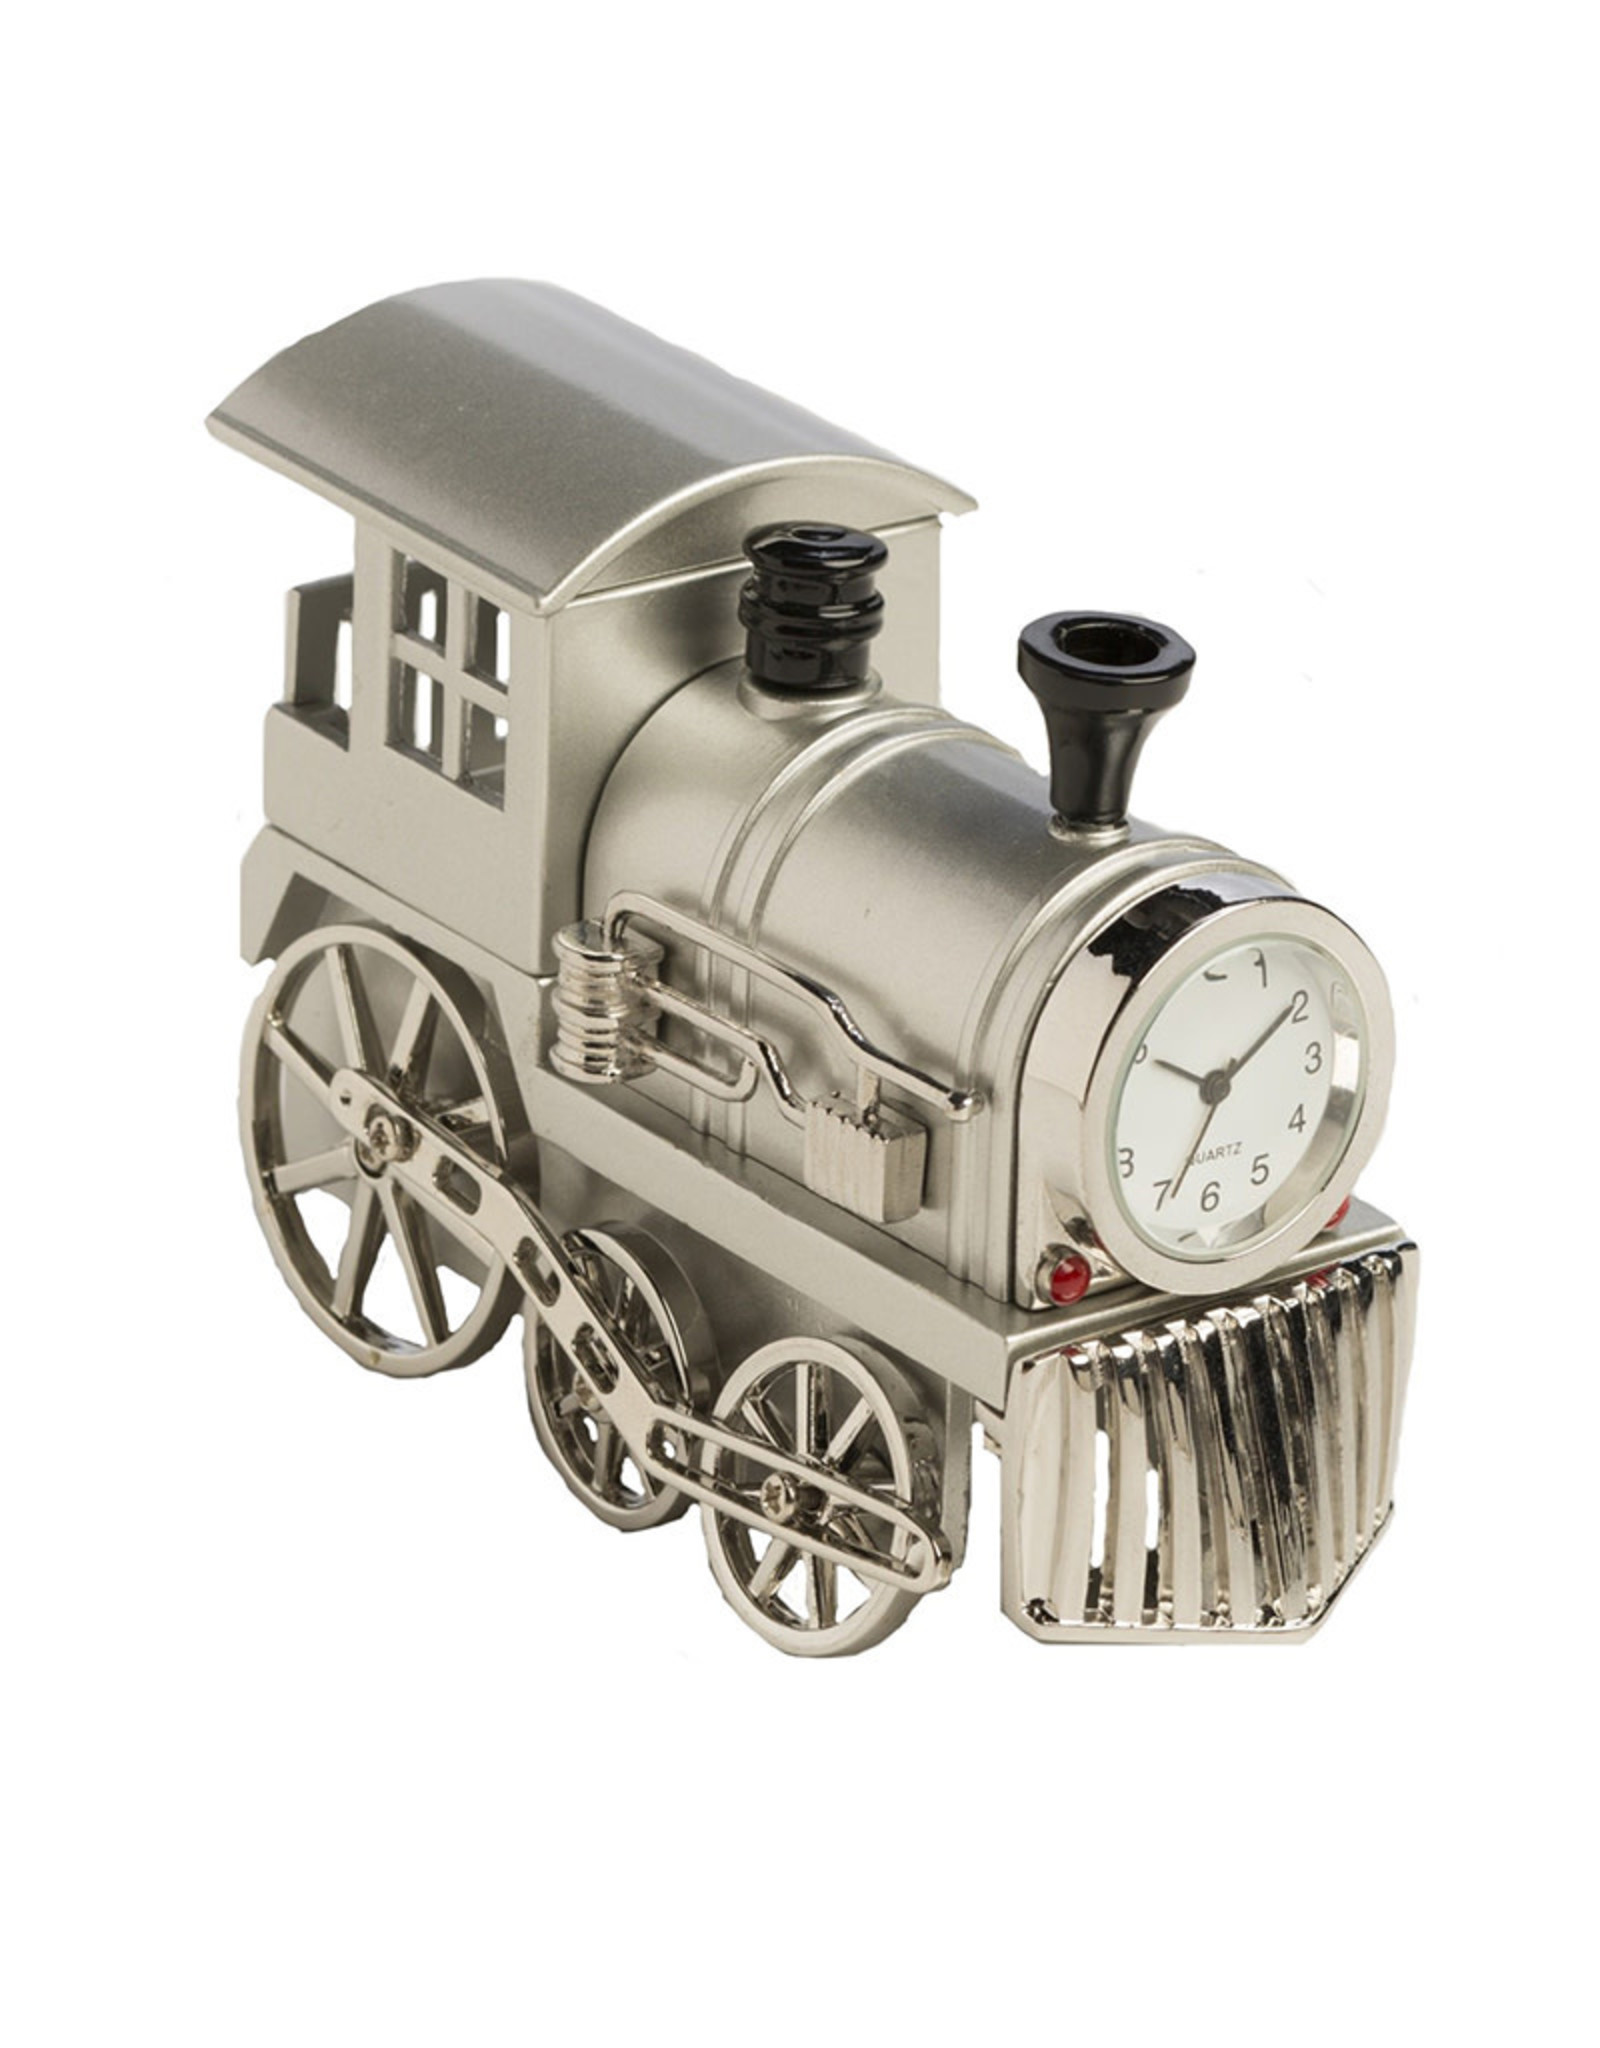 SANIS TRAIN MINIATURE CLOCK